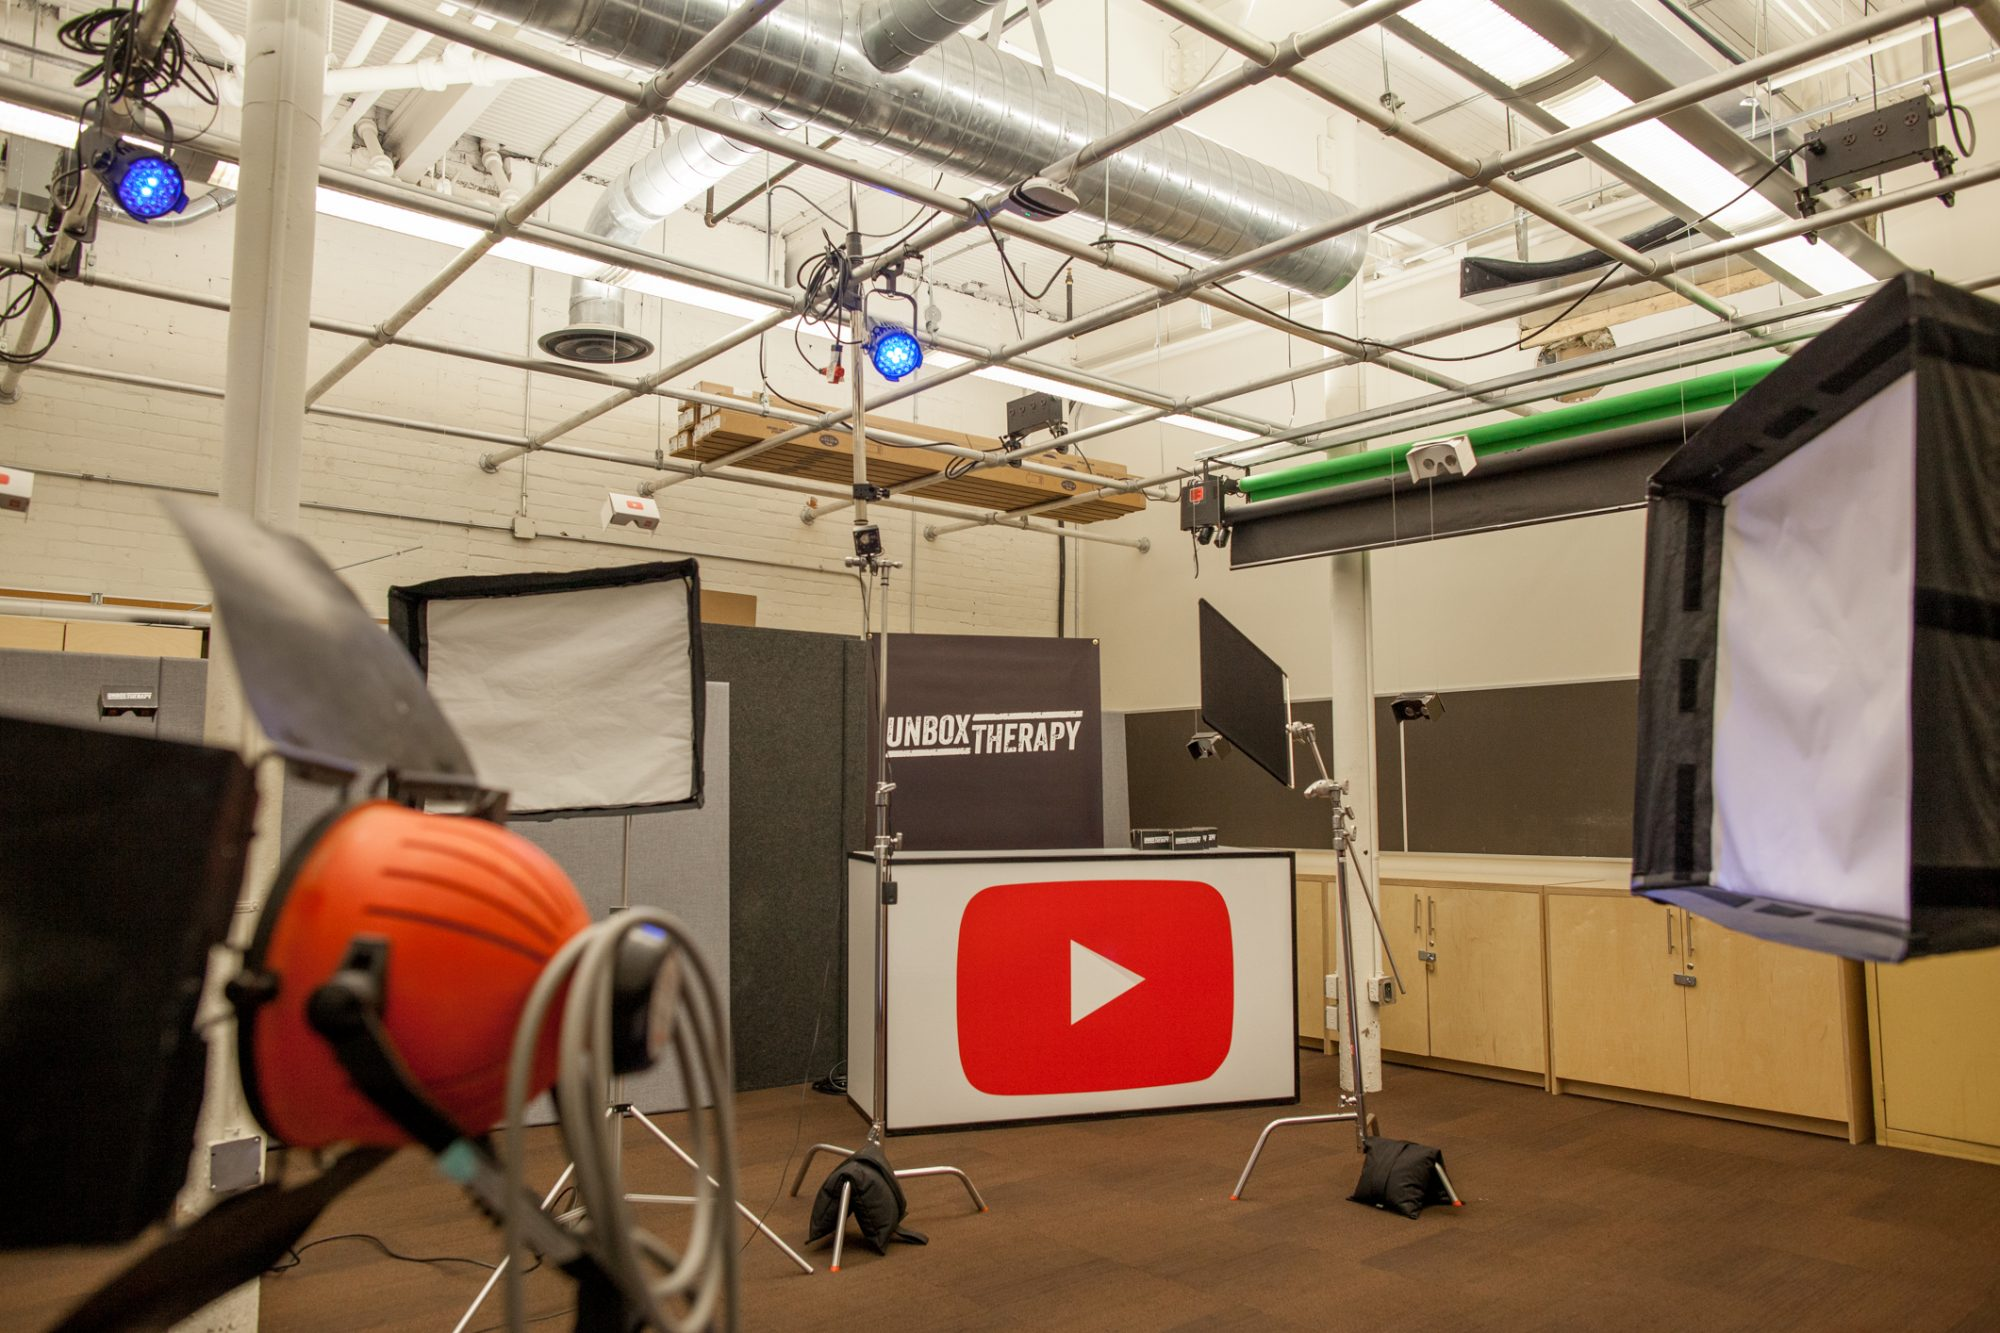 YouTube Space Toronto - Studio 2 VR room